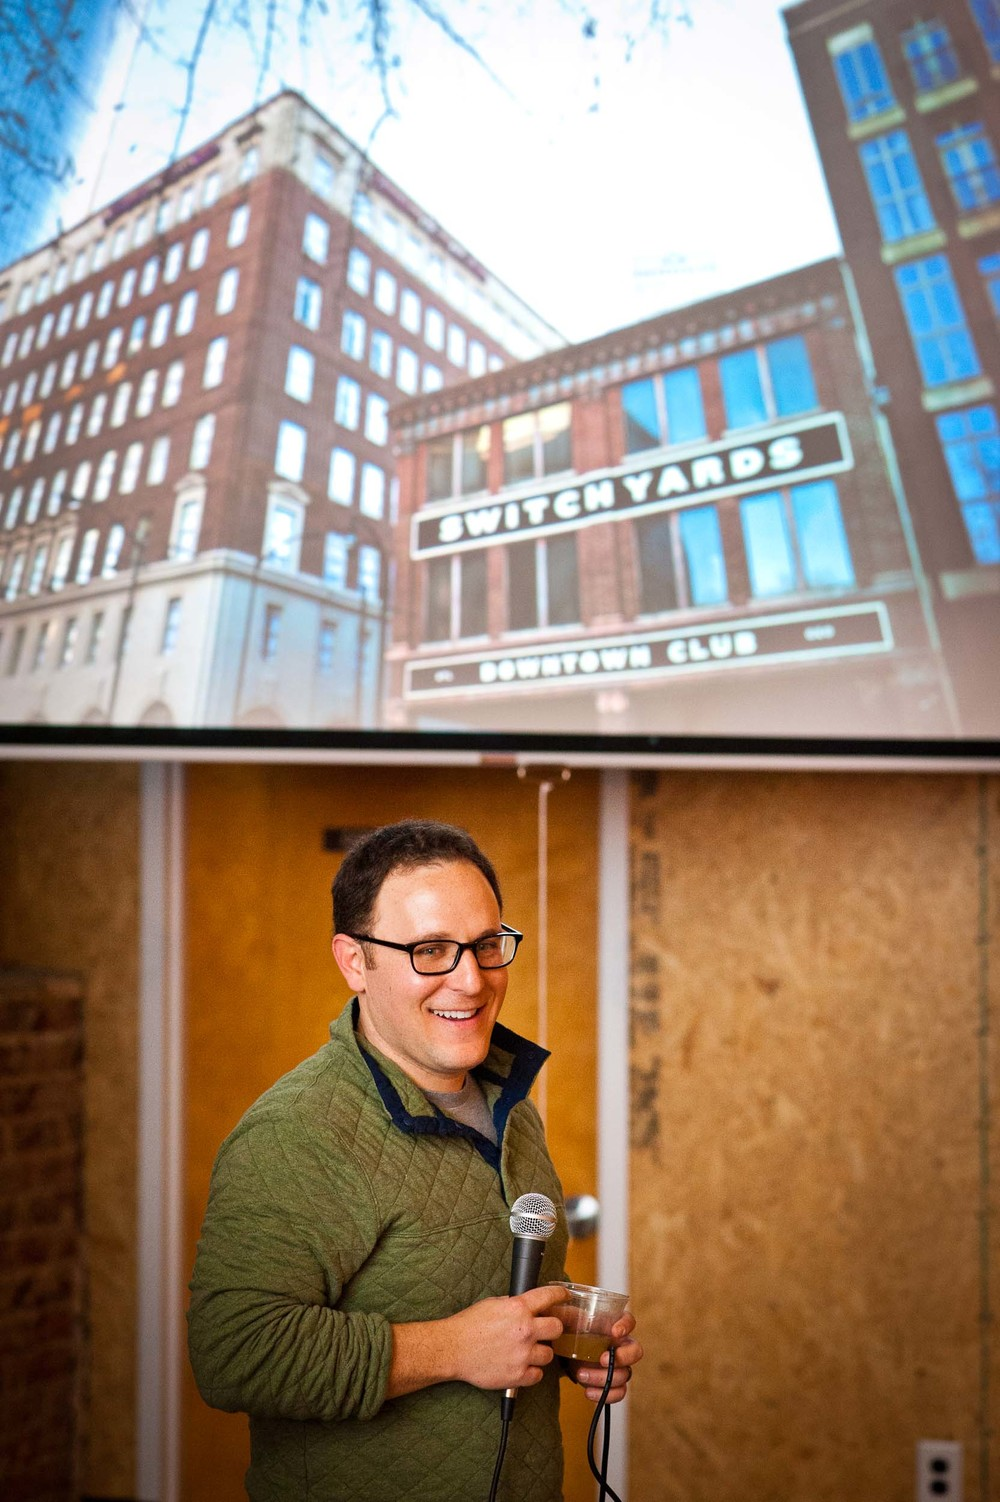 Switchyards Startup Crawl (Web Ready)_038.JPG